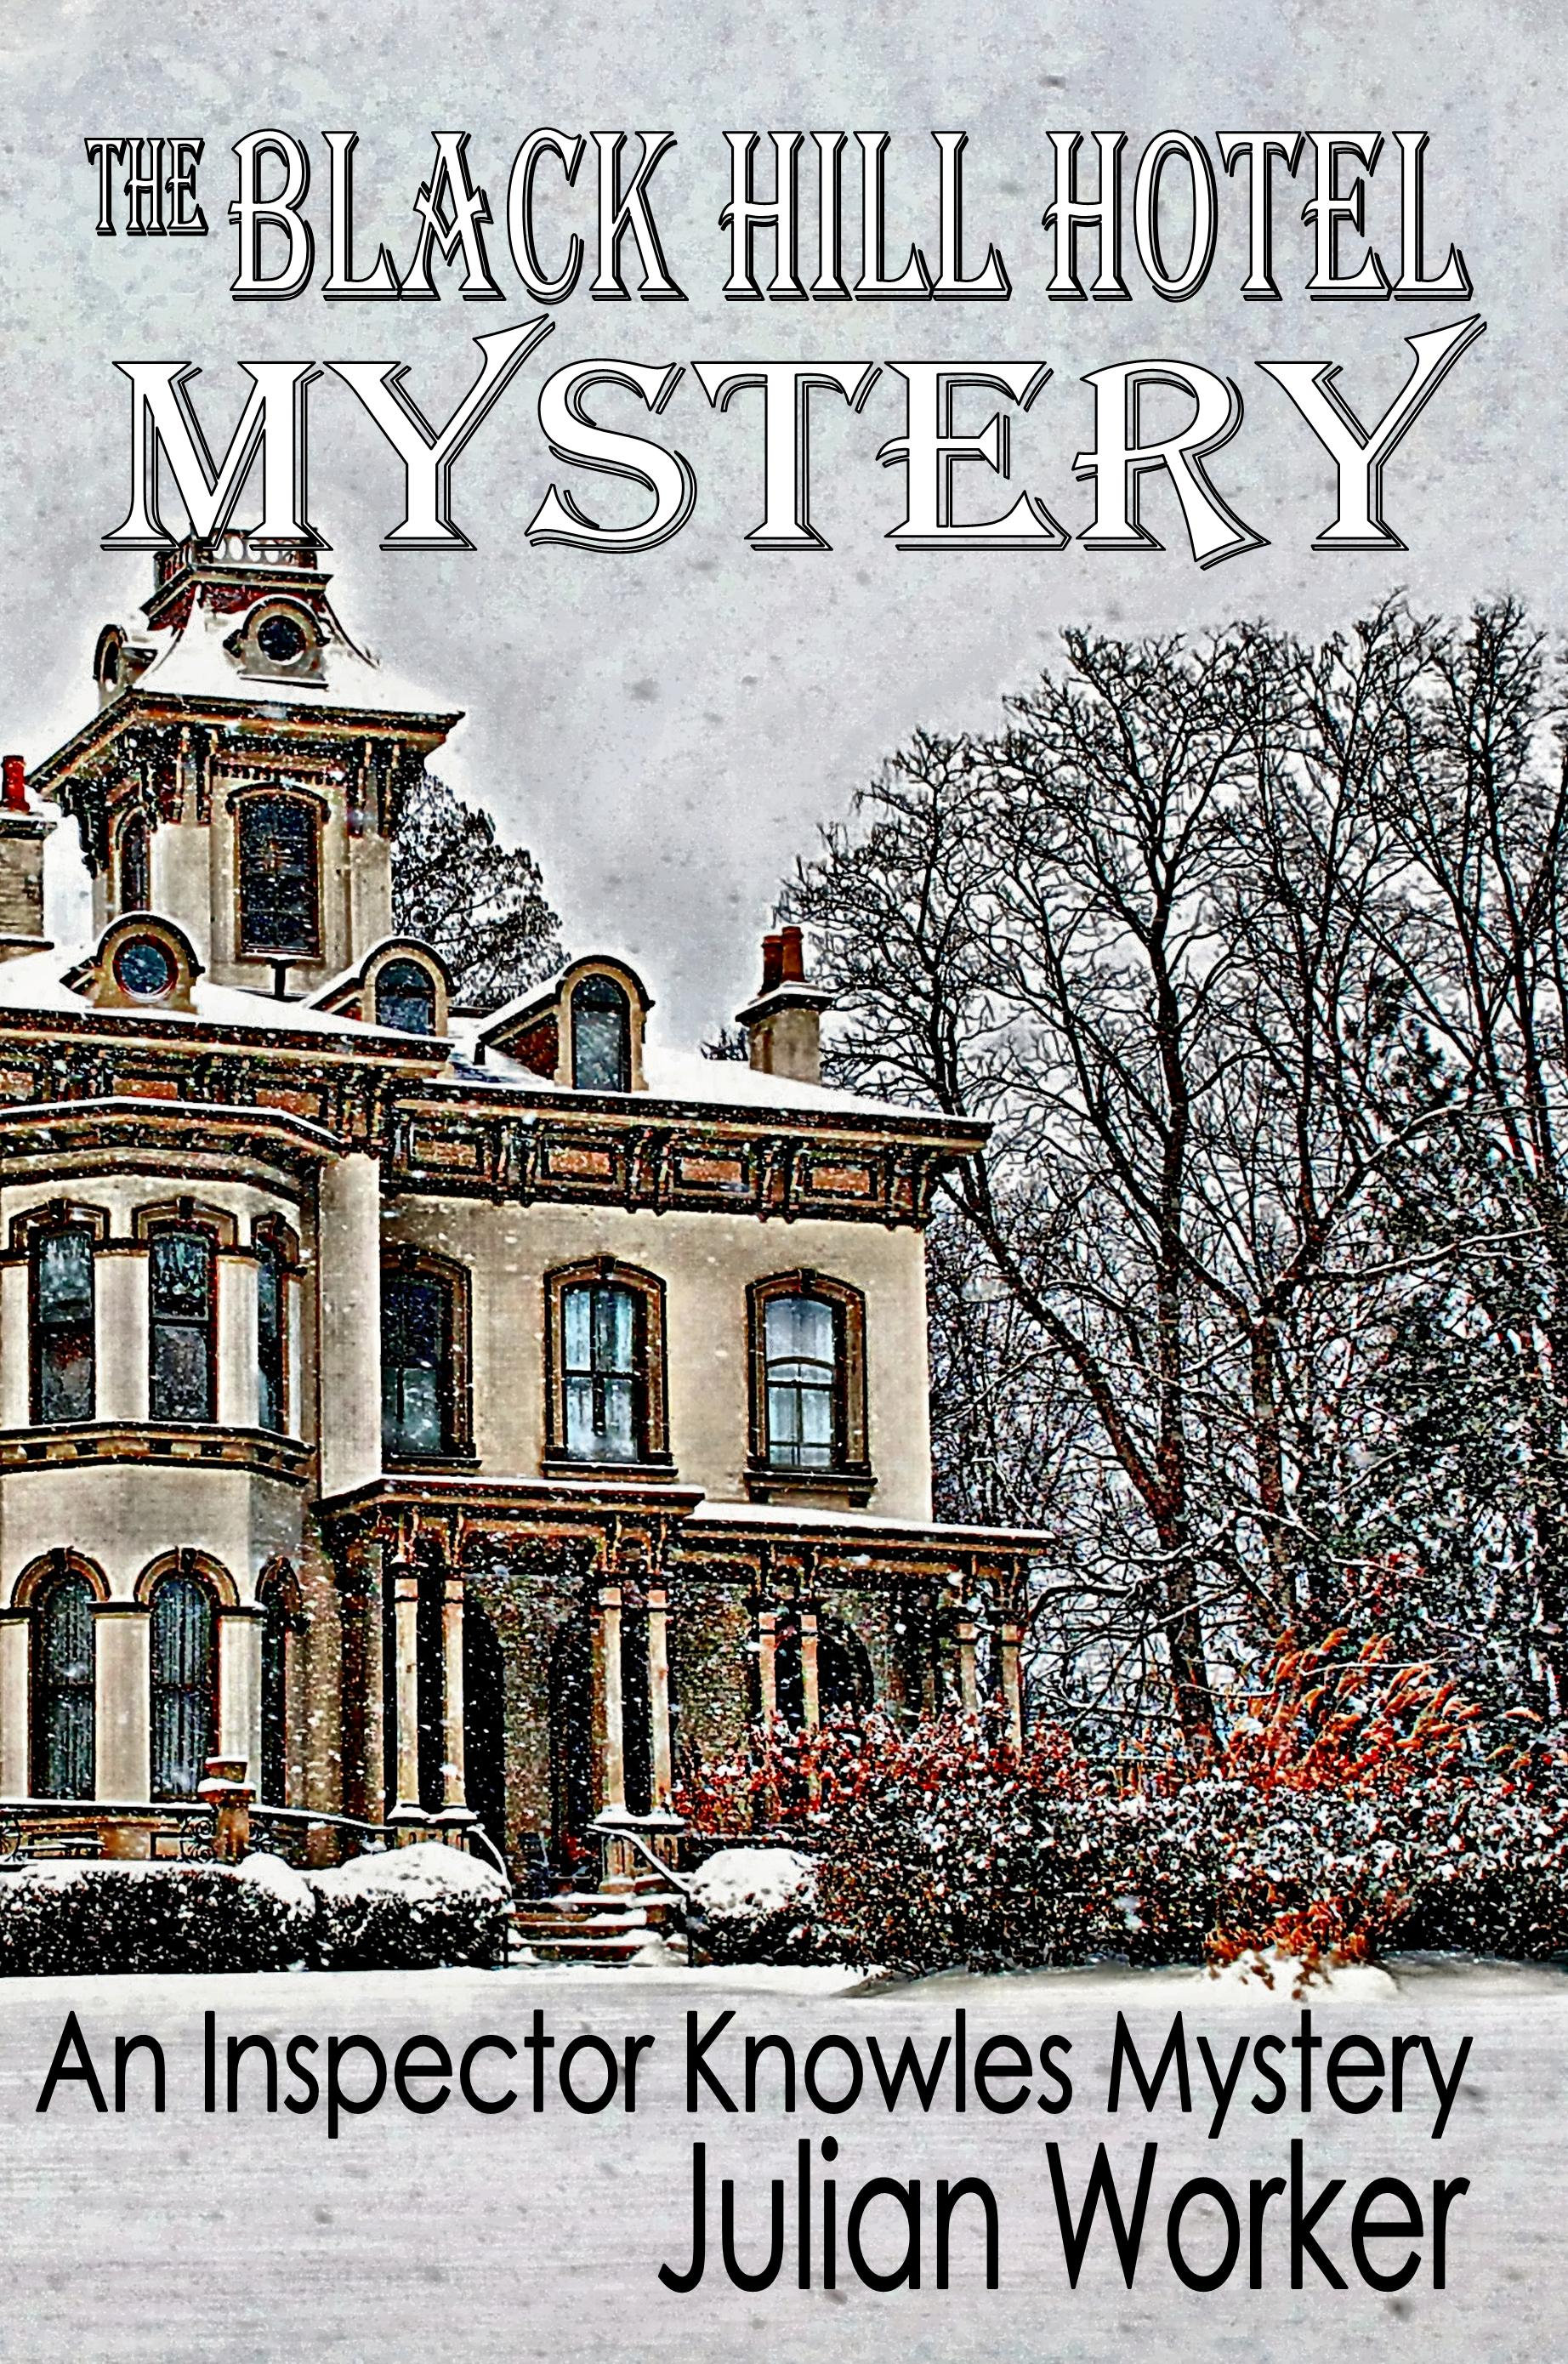 The Black Hill Hotel Mystery – 6